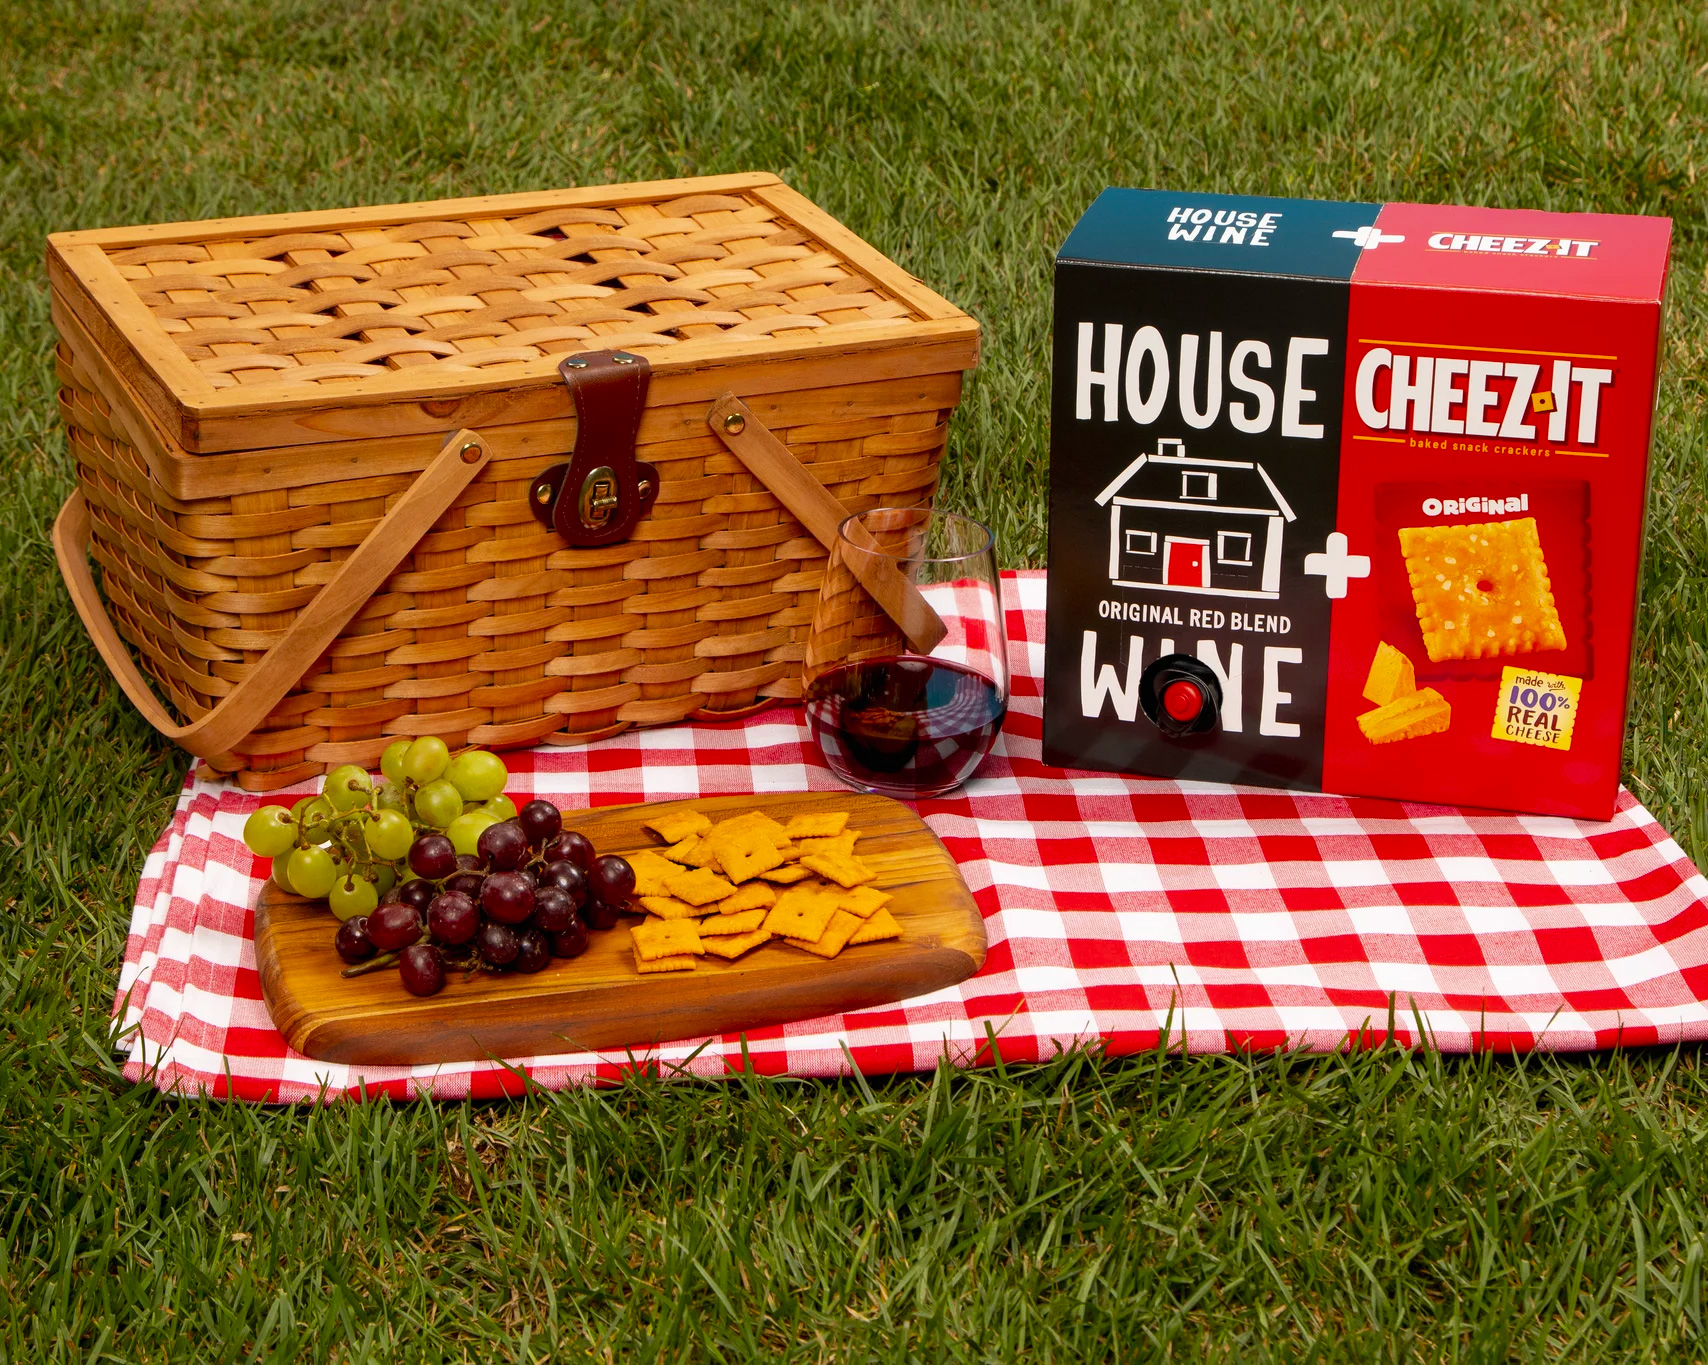 Hosting a Little Wine & Cheese Social Just Got Cheezier at werd.com